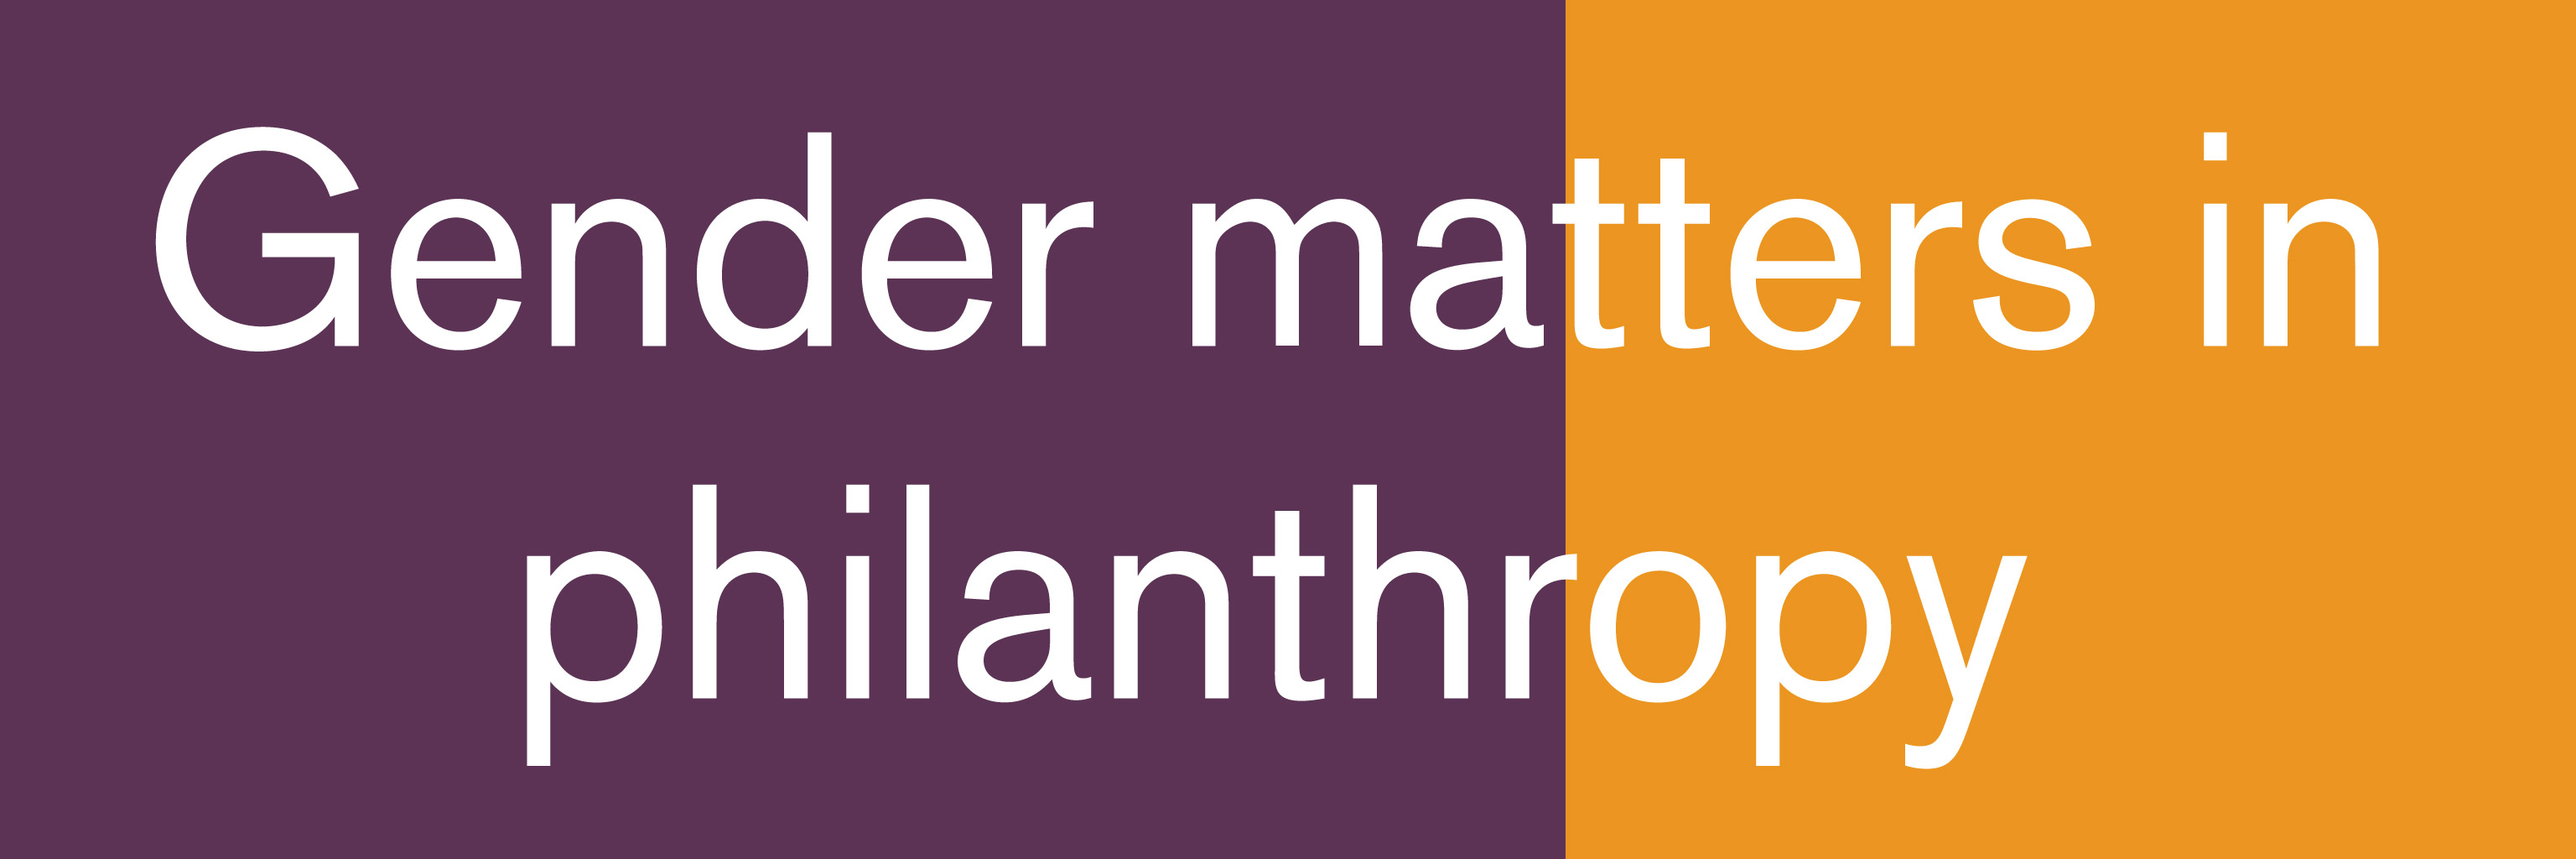 Gender matters in philanthropy